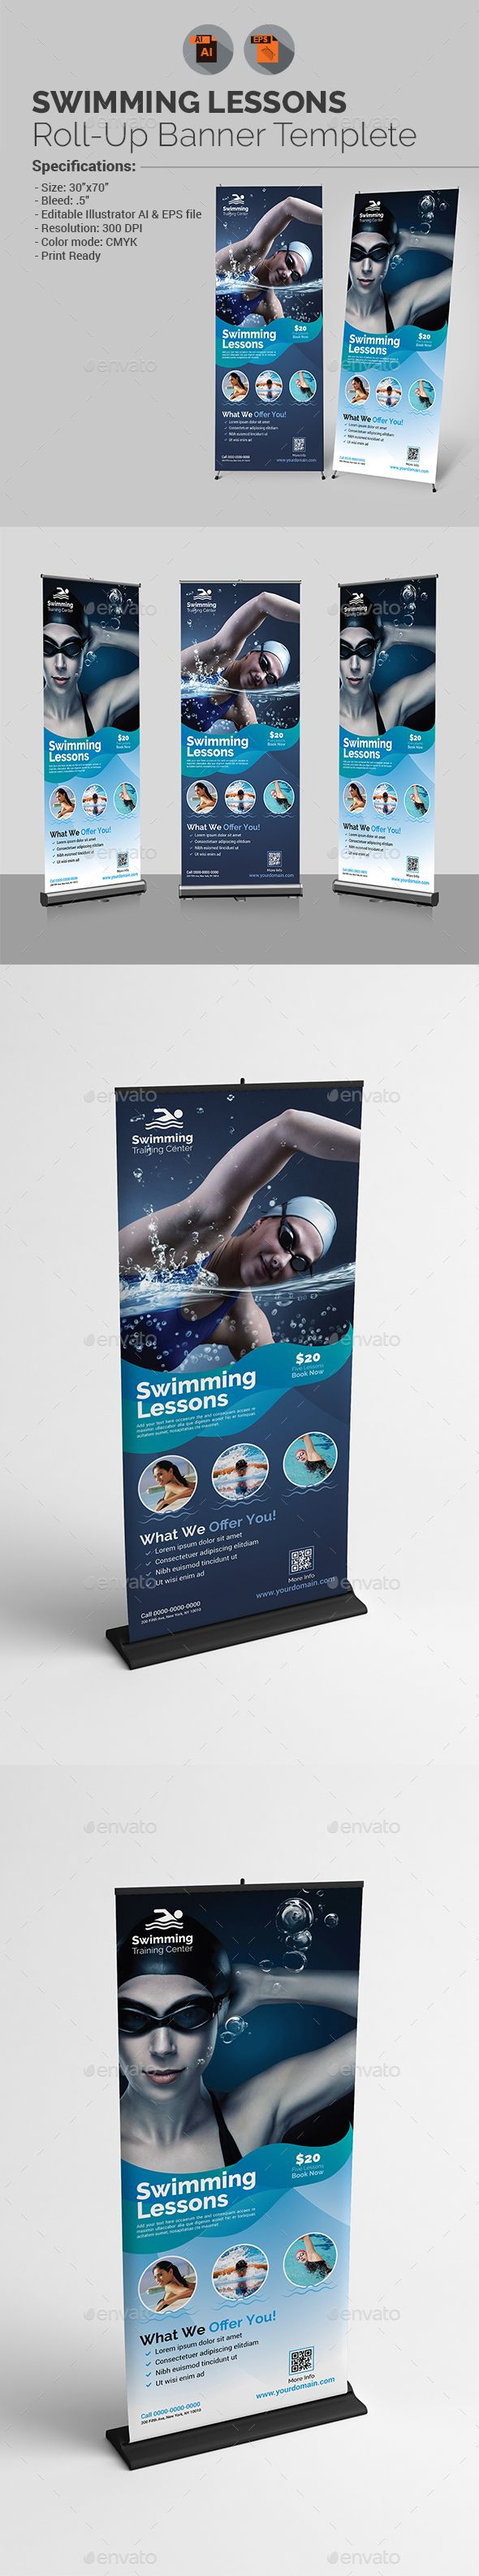 Swimming Lessons Roll-Up Banner Template Vector EPS, AI. Download here: http://graphicriver.net/item/swimming-lessons-rollup-banner-template/15526708?ref=ksioks